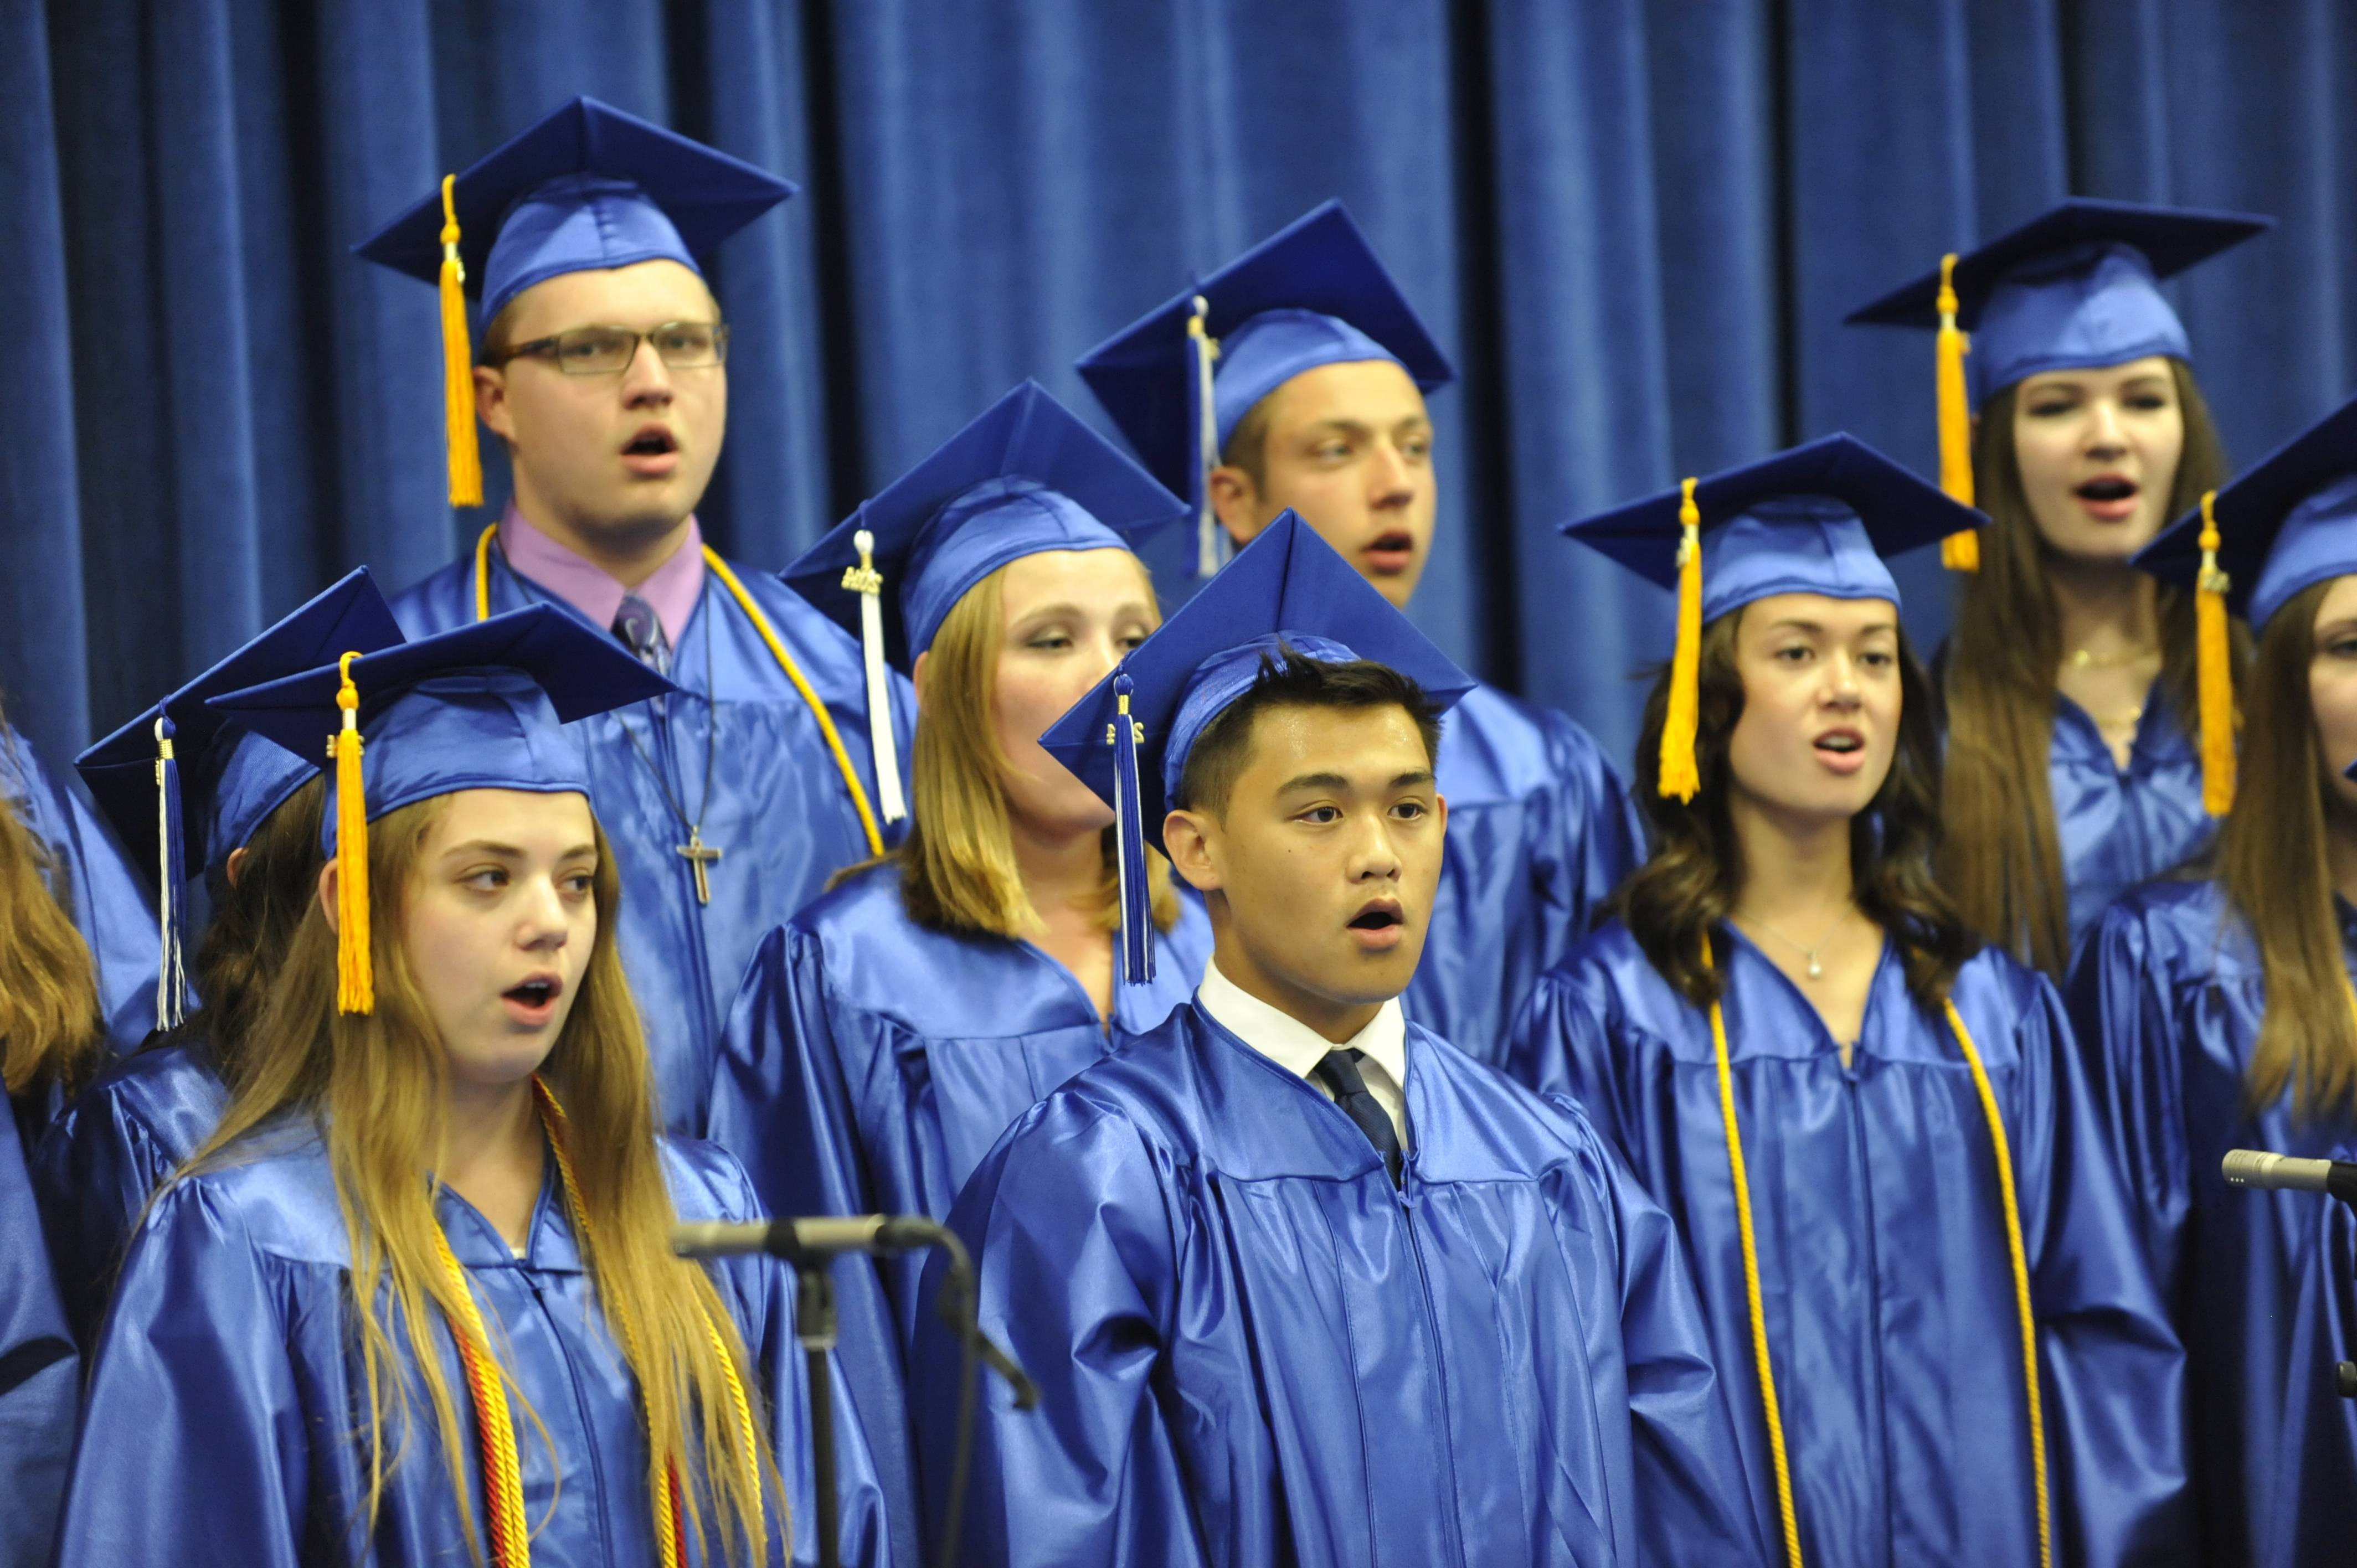 Images from the Burlington Central High School graduation ceremony on Friday, May 30th, at Elgin Community College.